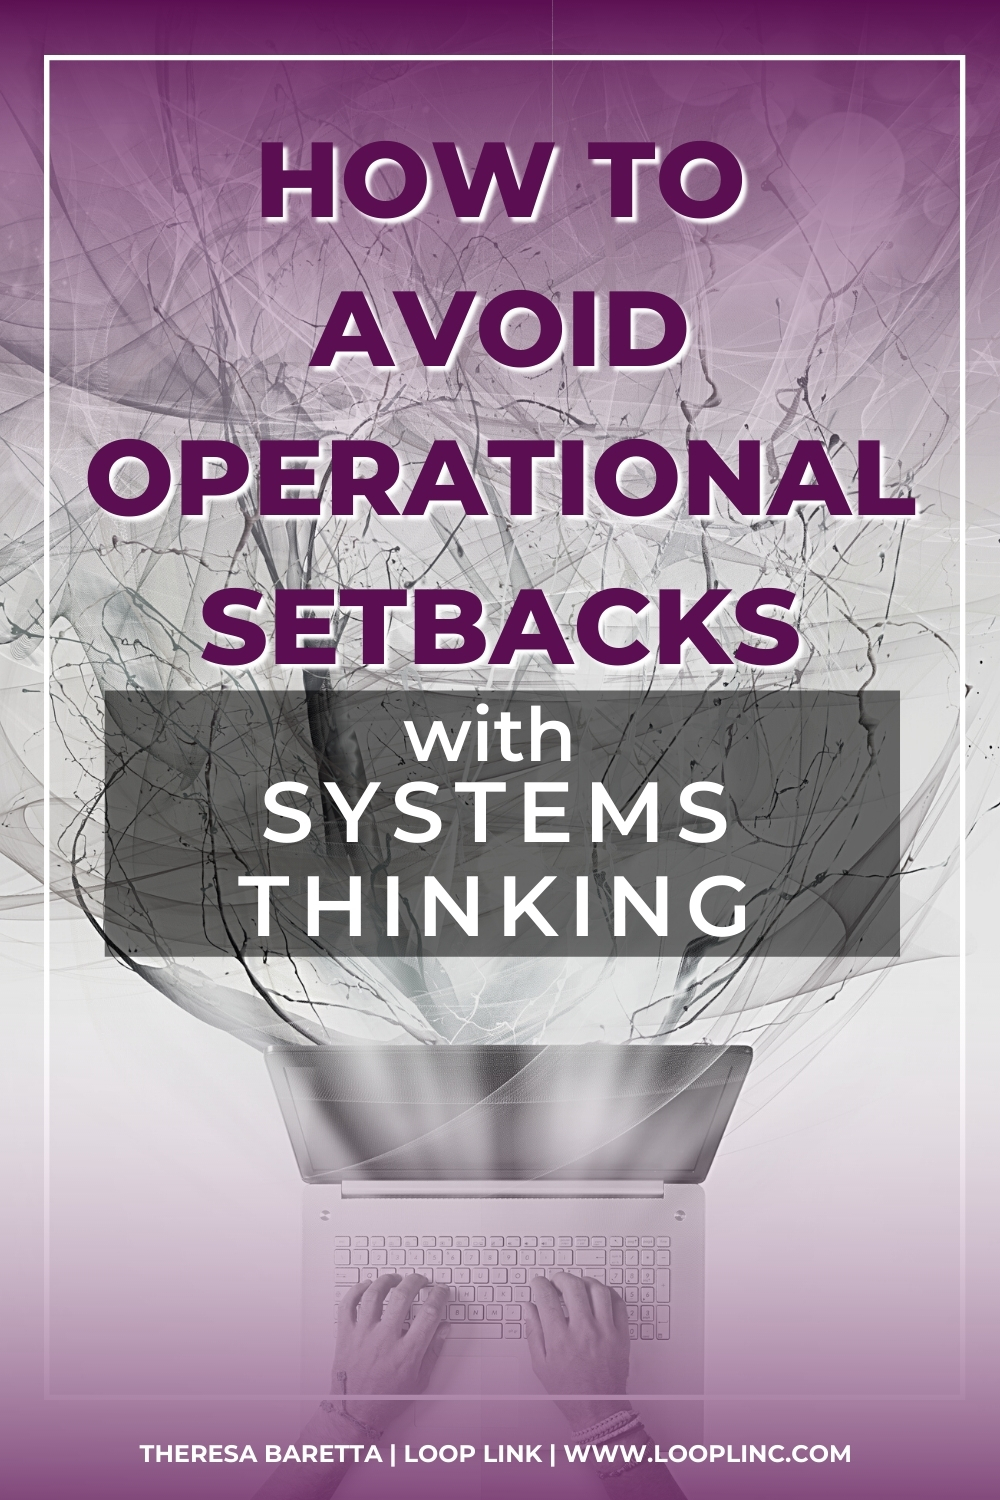 How to Avoid Operational Setbacks with Systems Thinking